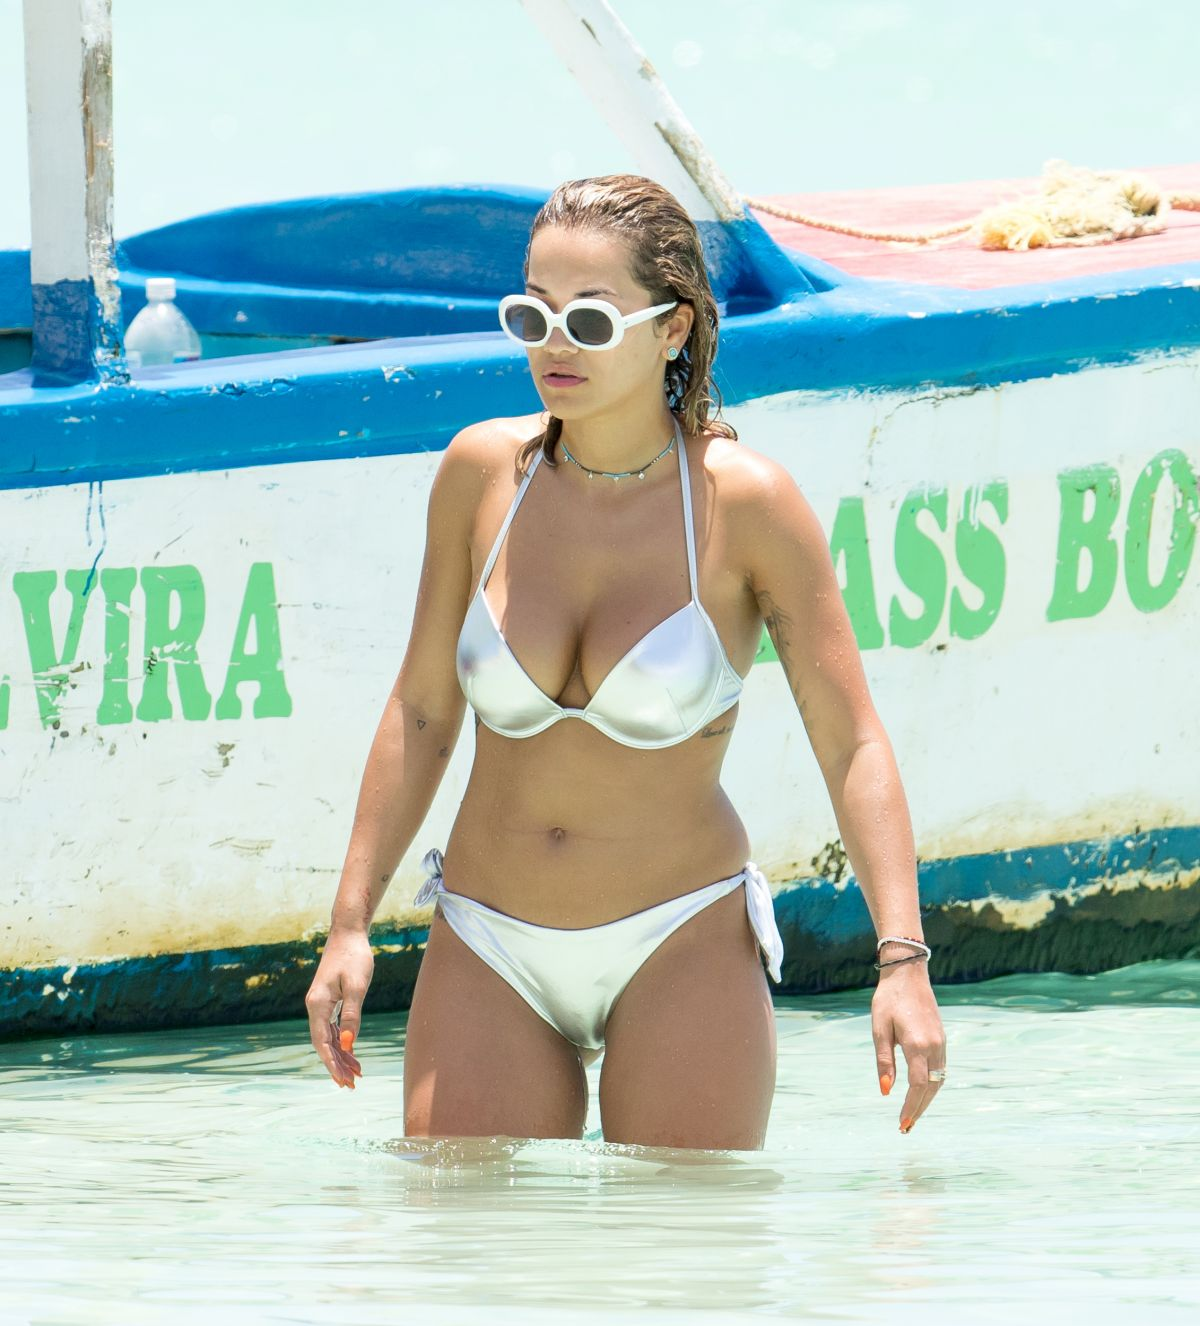 rita-ora-at-beach-bikini-fun-in-jamaica_1